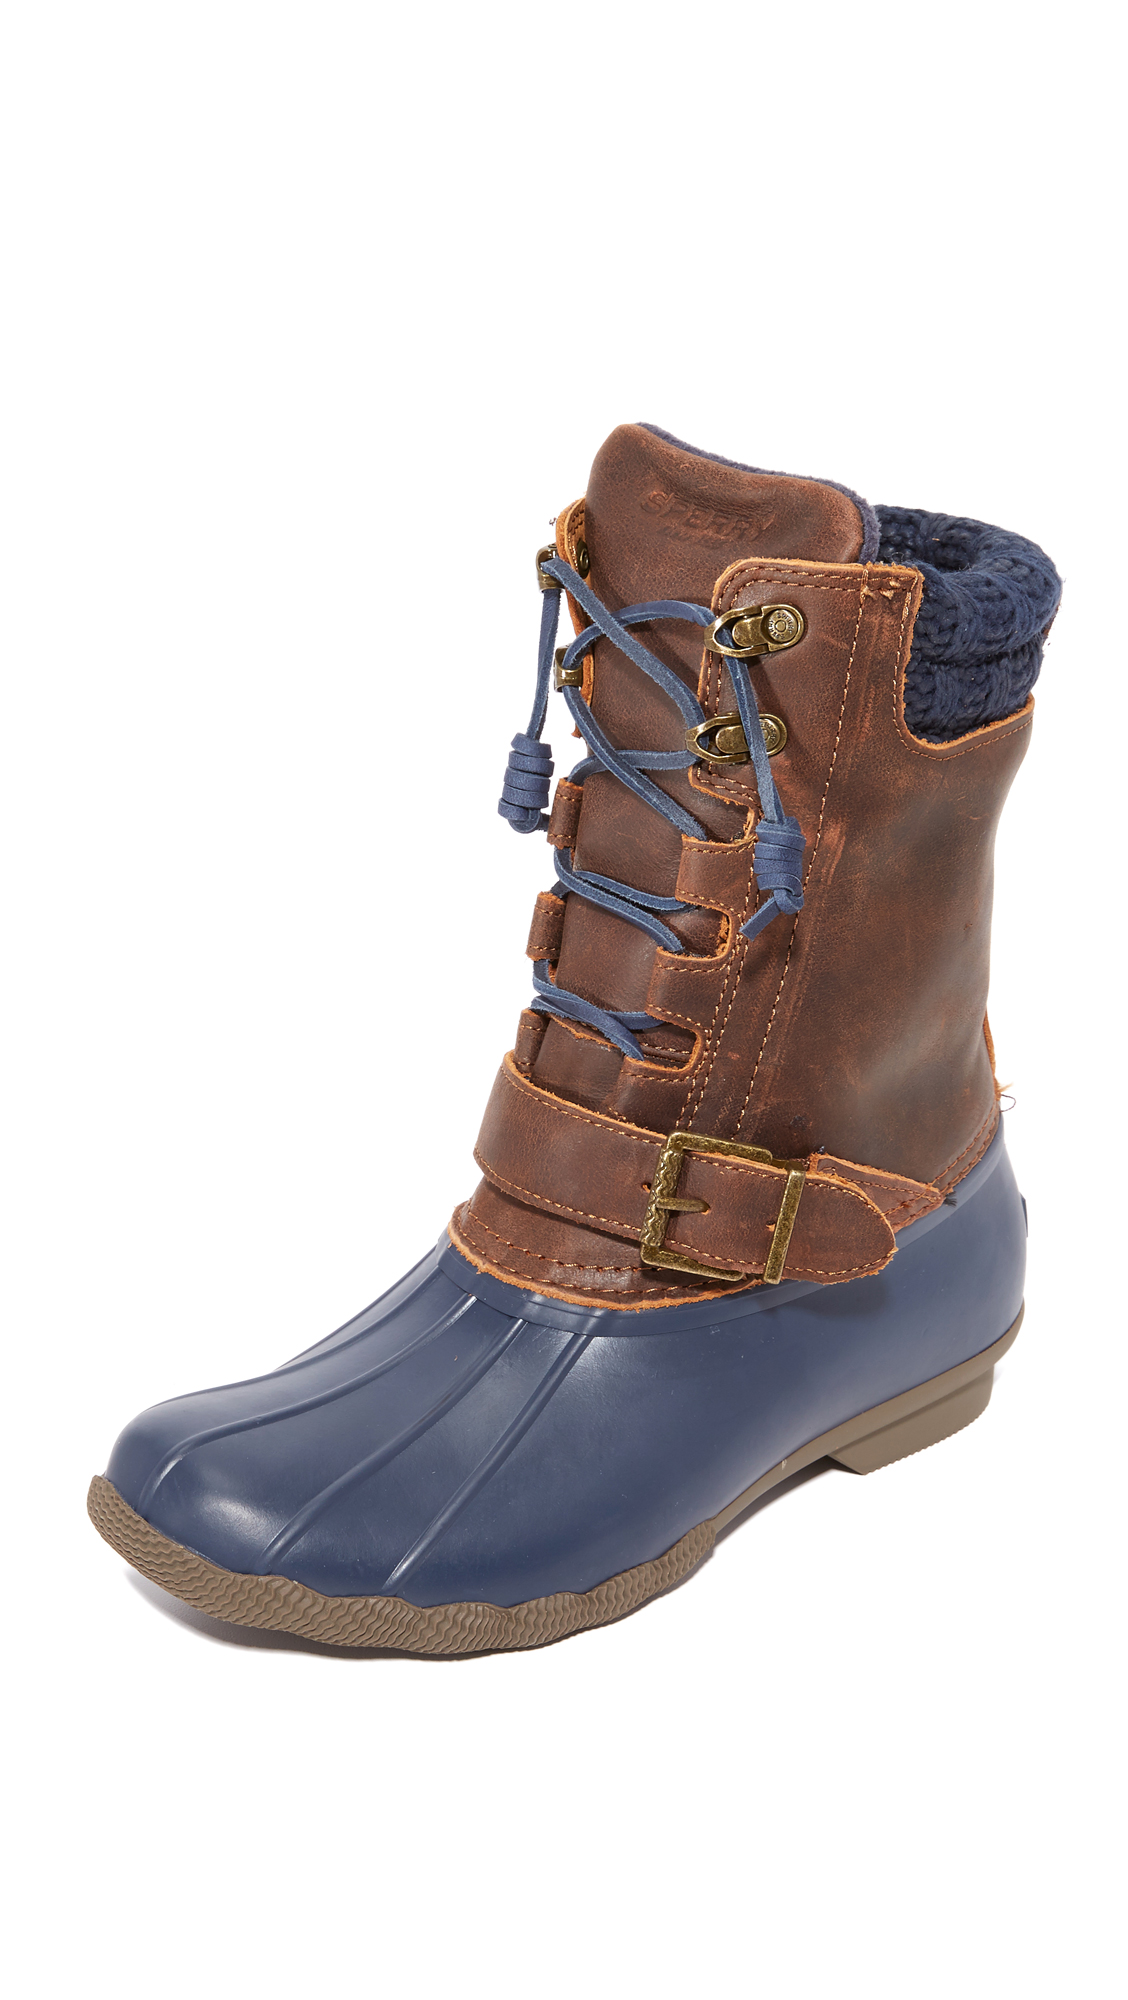 Photo of Sperry Saltwater Misty Boots Navy-Brown - Sperry online